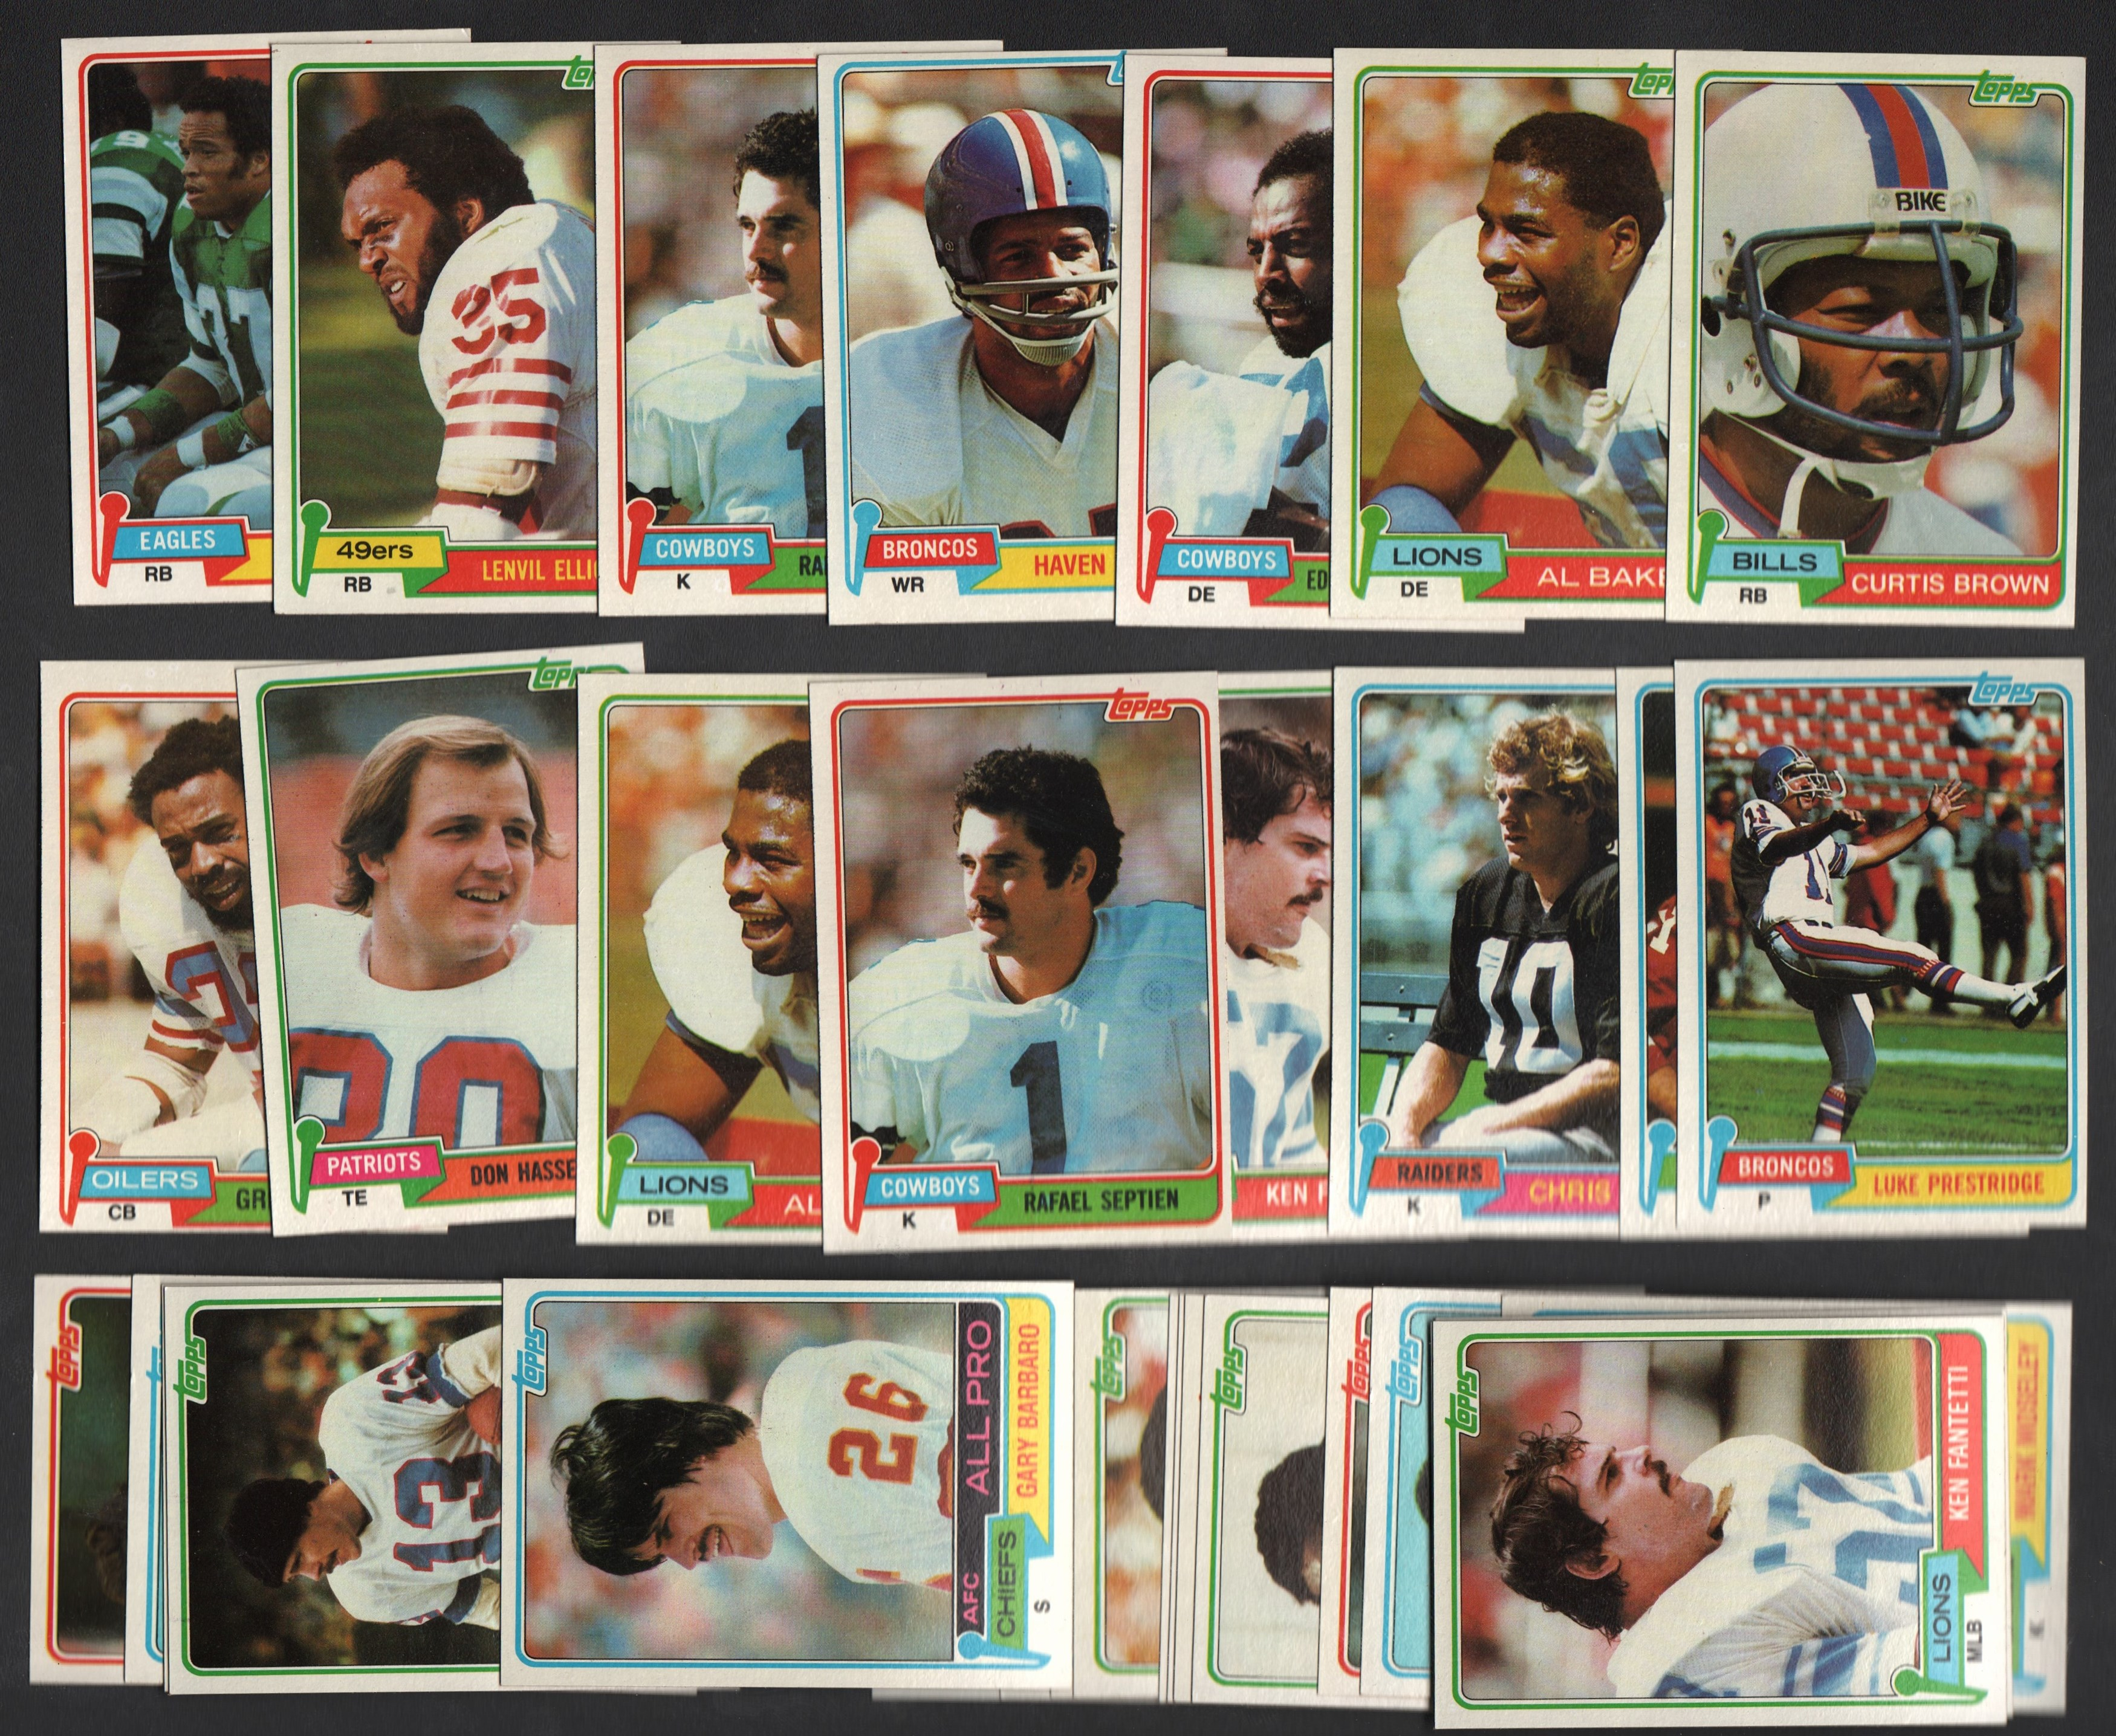 1981 Topps FOOTBALL Massive Lot of 12,000+ Cards